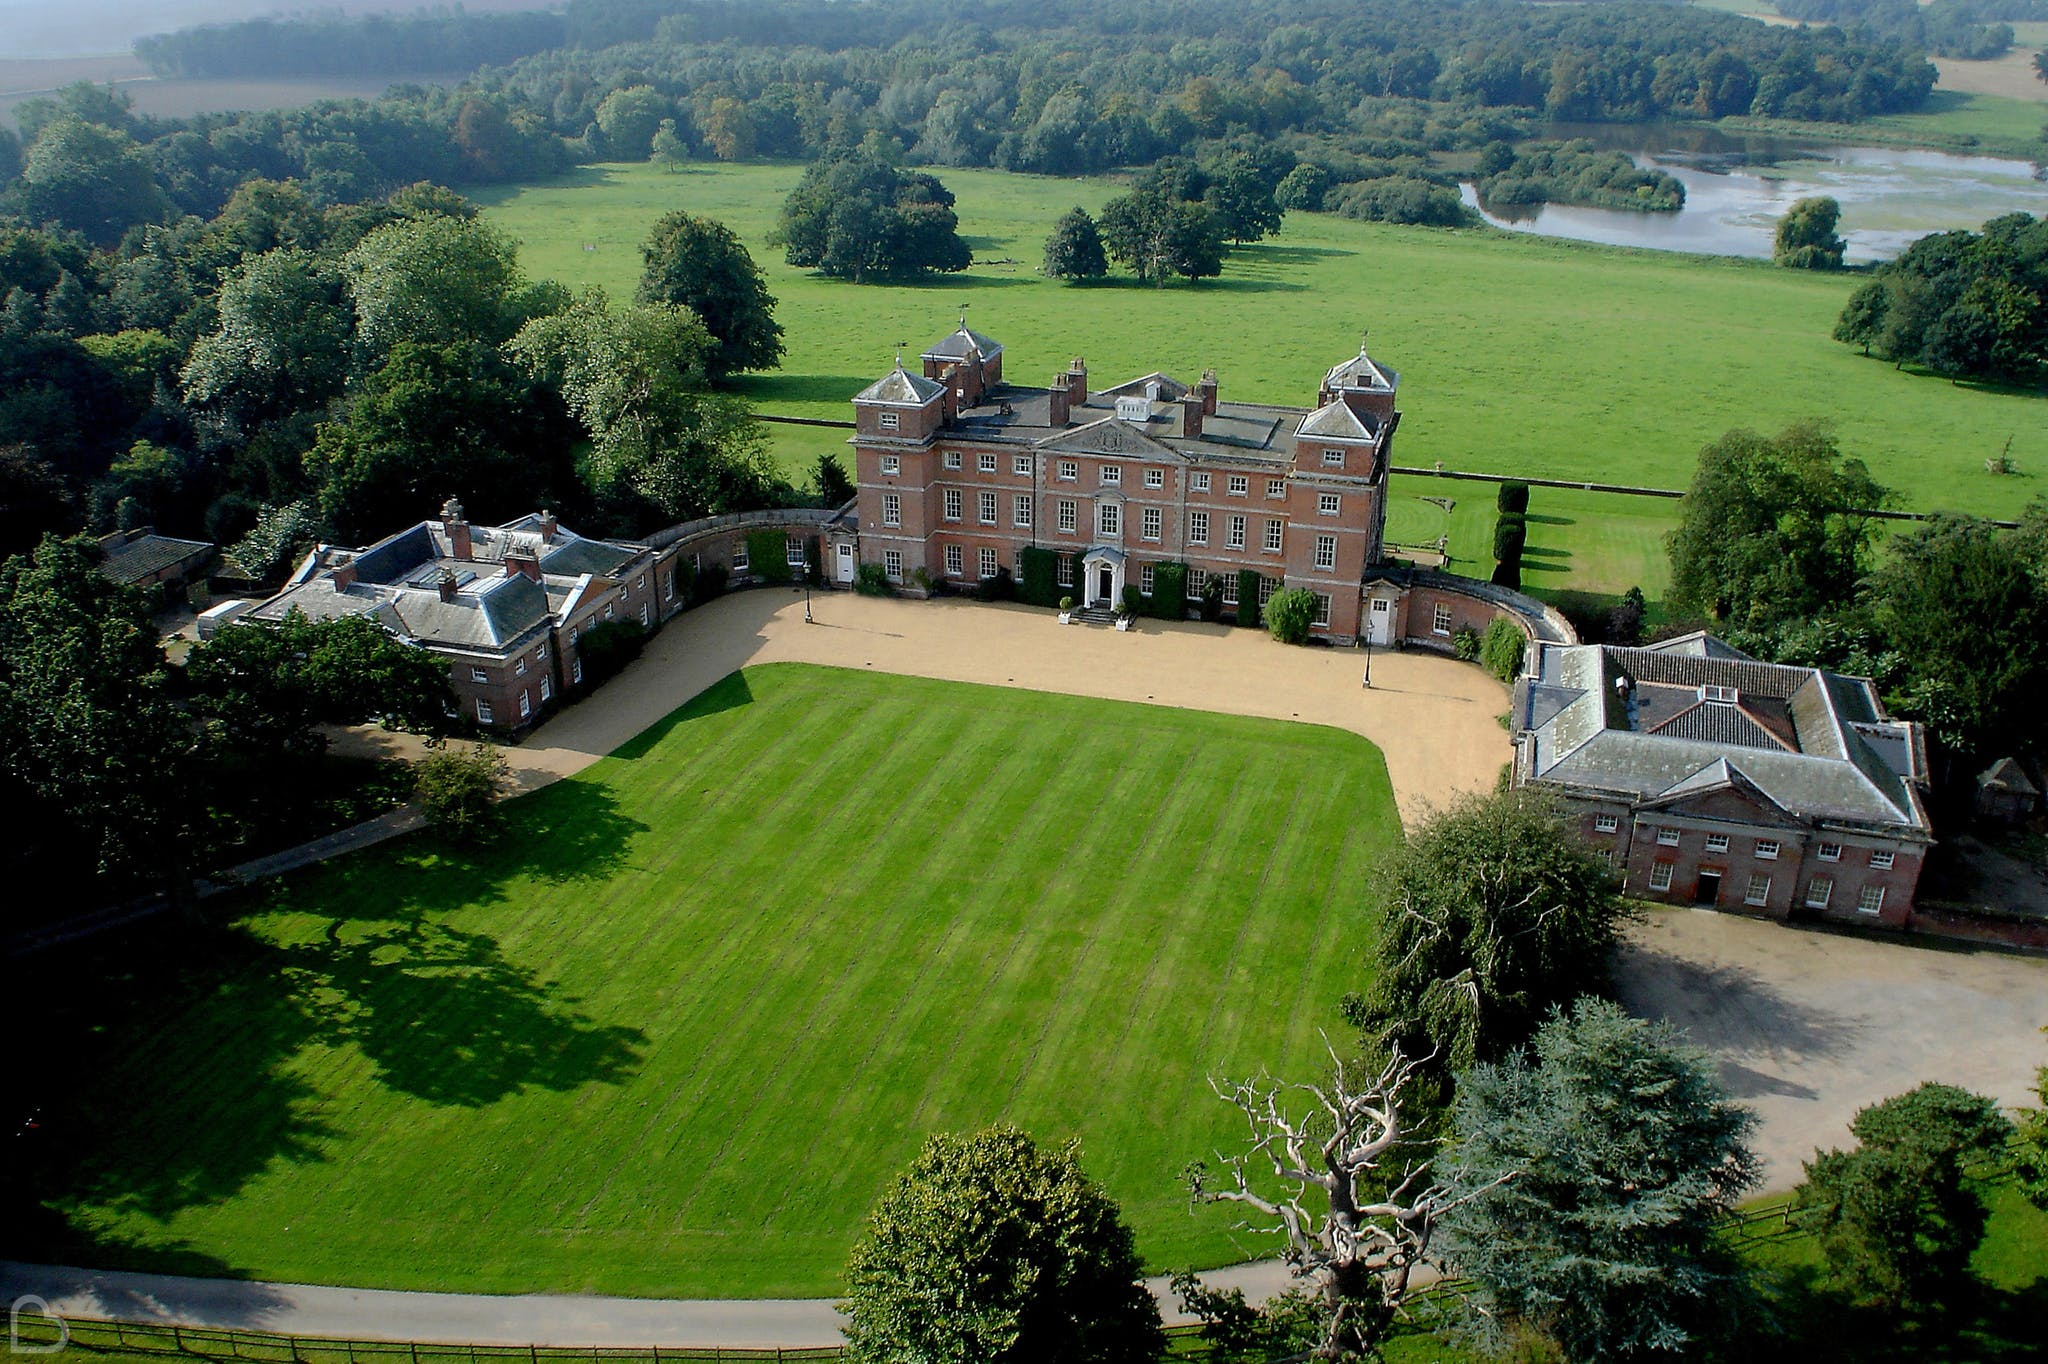 Kimberley Hall, a manor house wedding venue in Norforlk